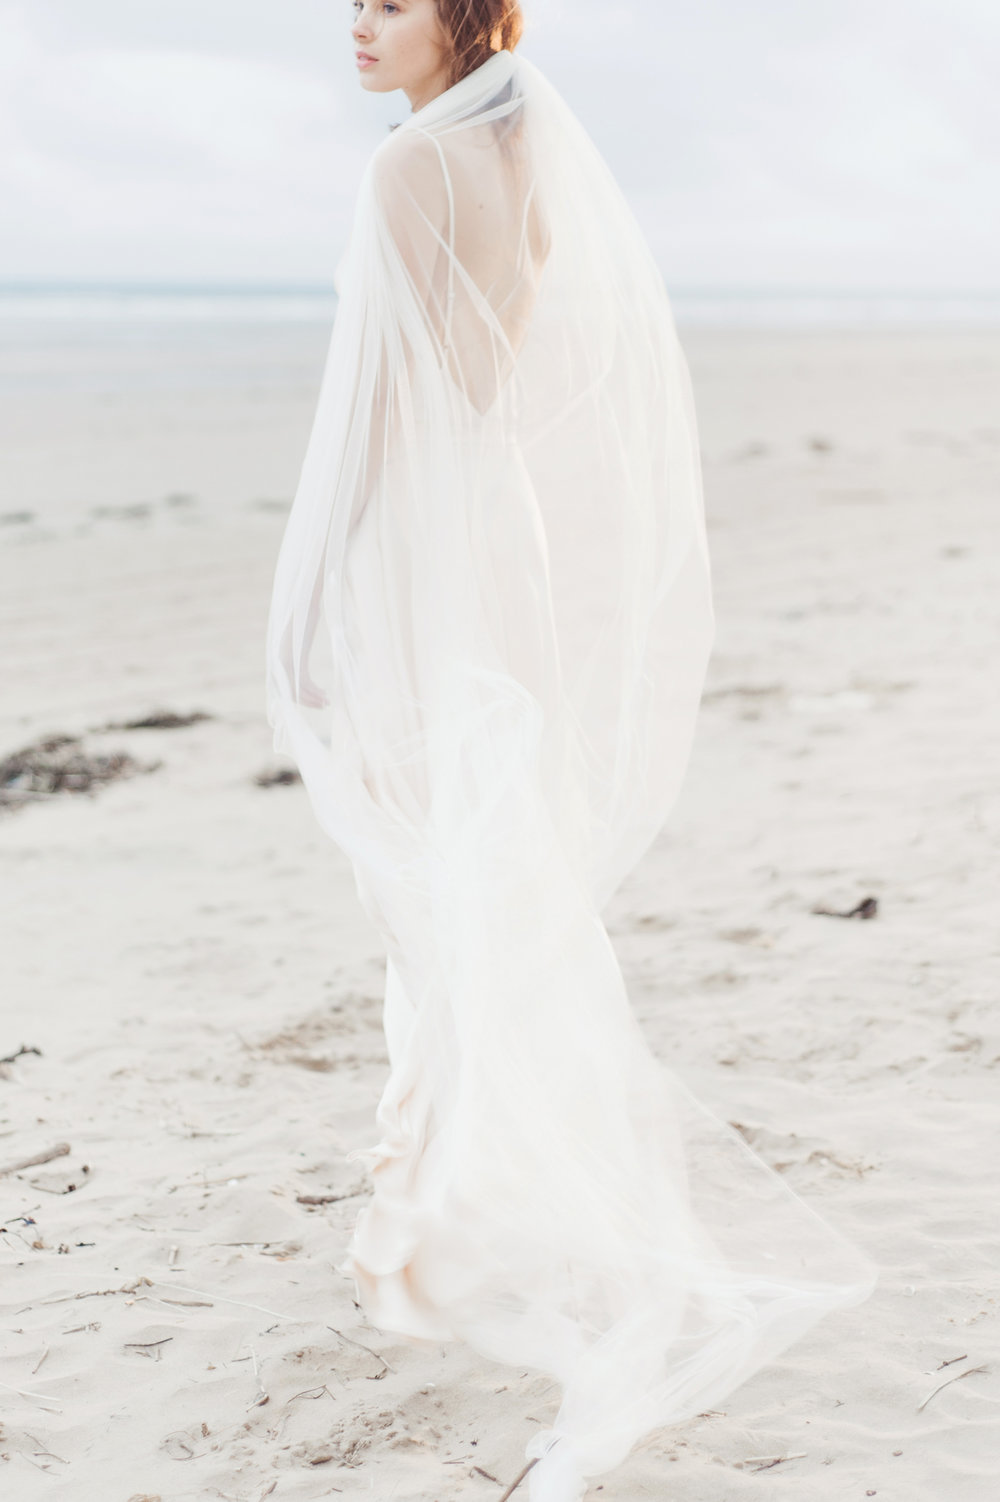 Kate-Beaumont-Wedding-Dresses-Formby-Beach-Emma-Pilkington-48.jpg